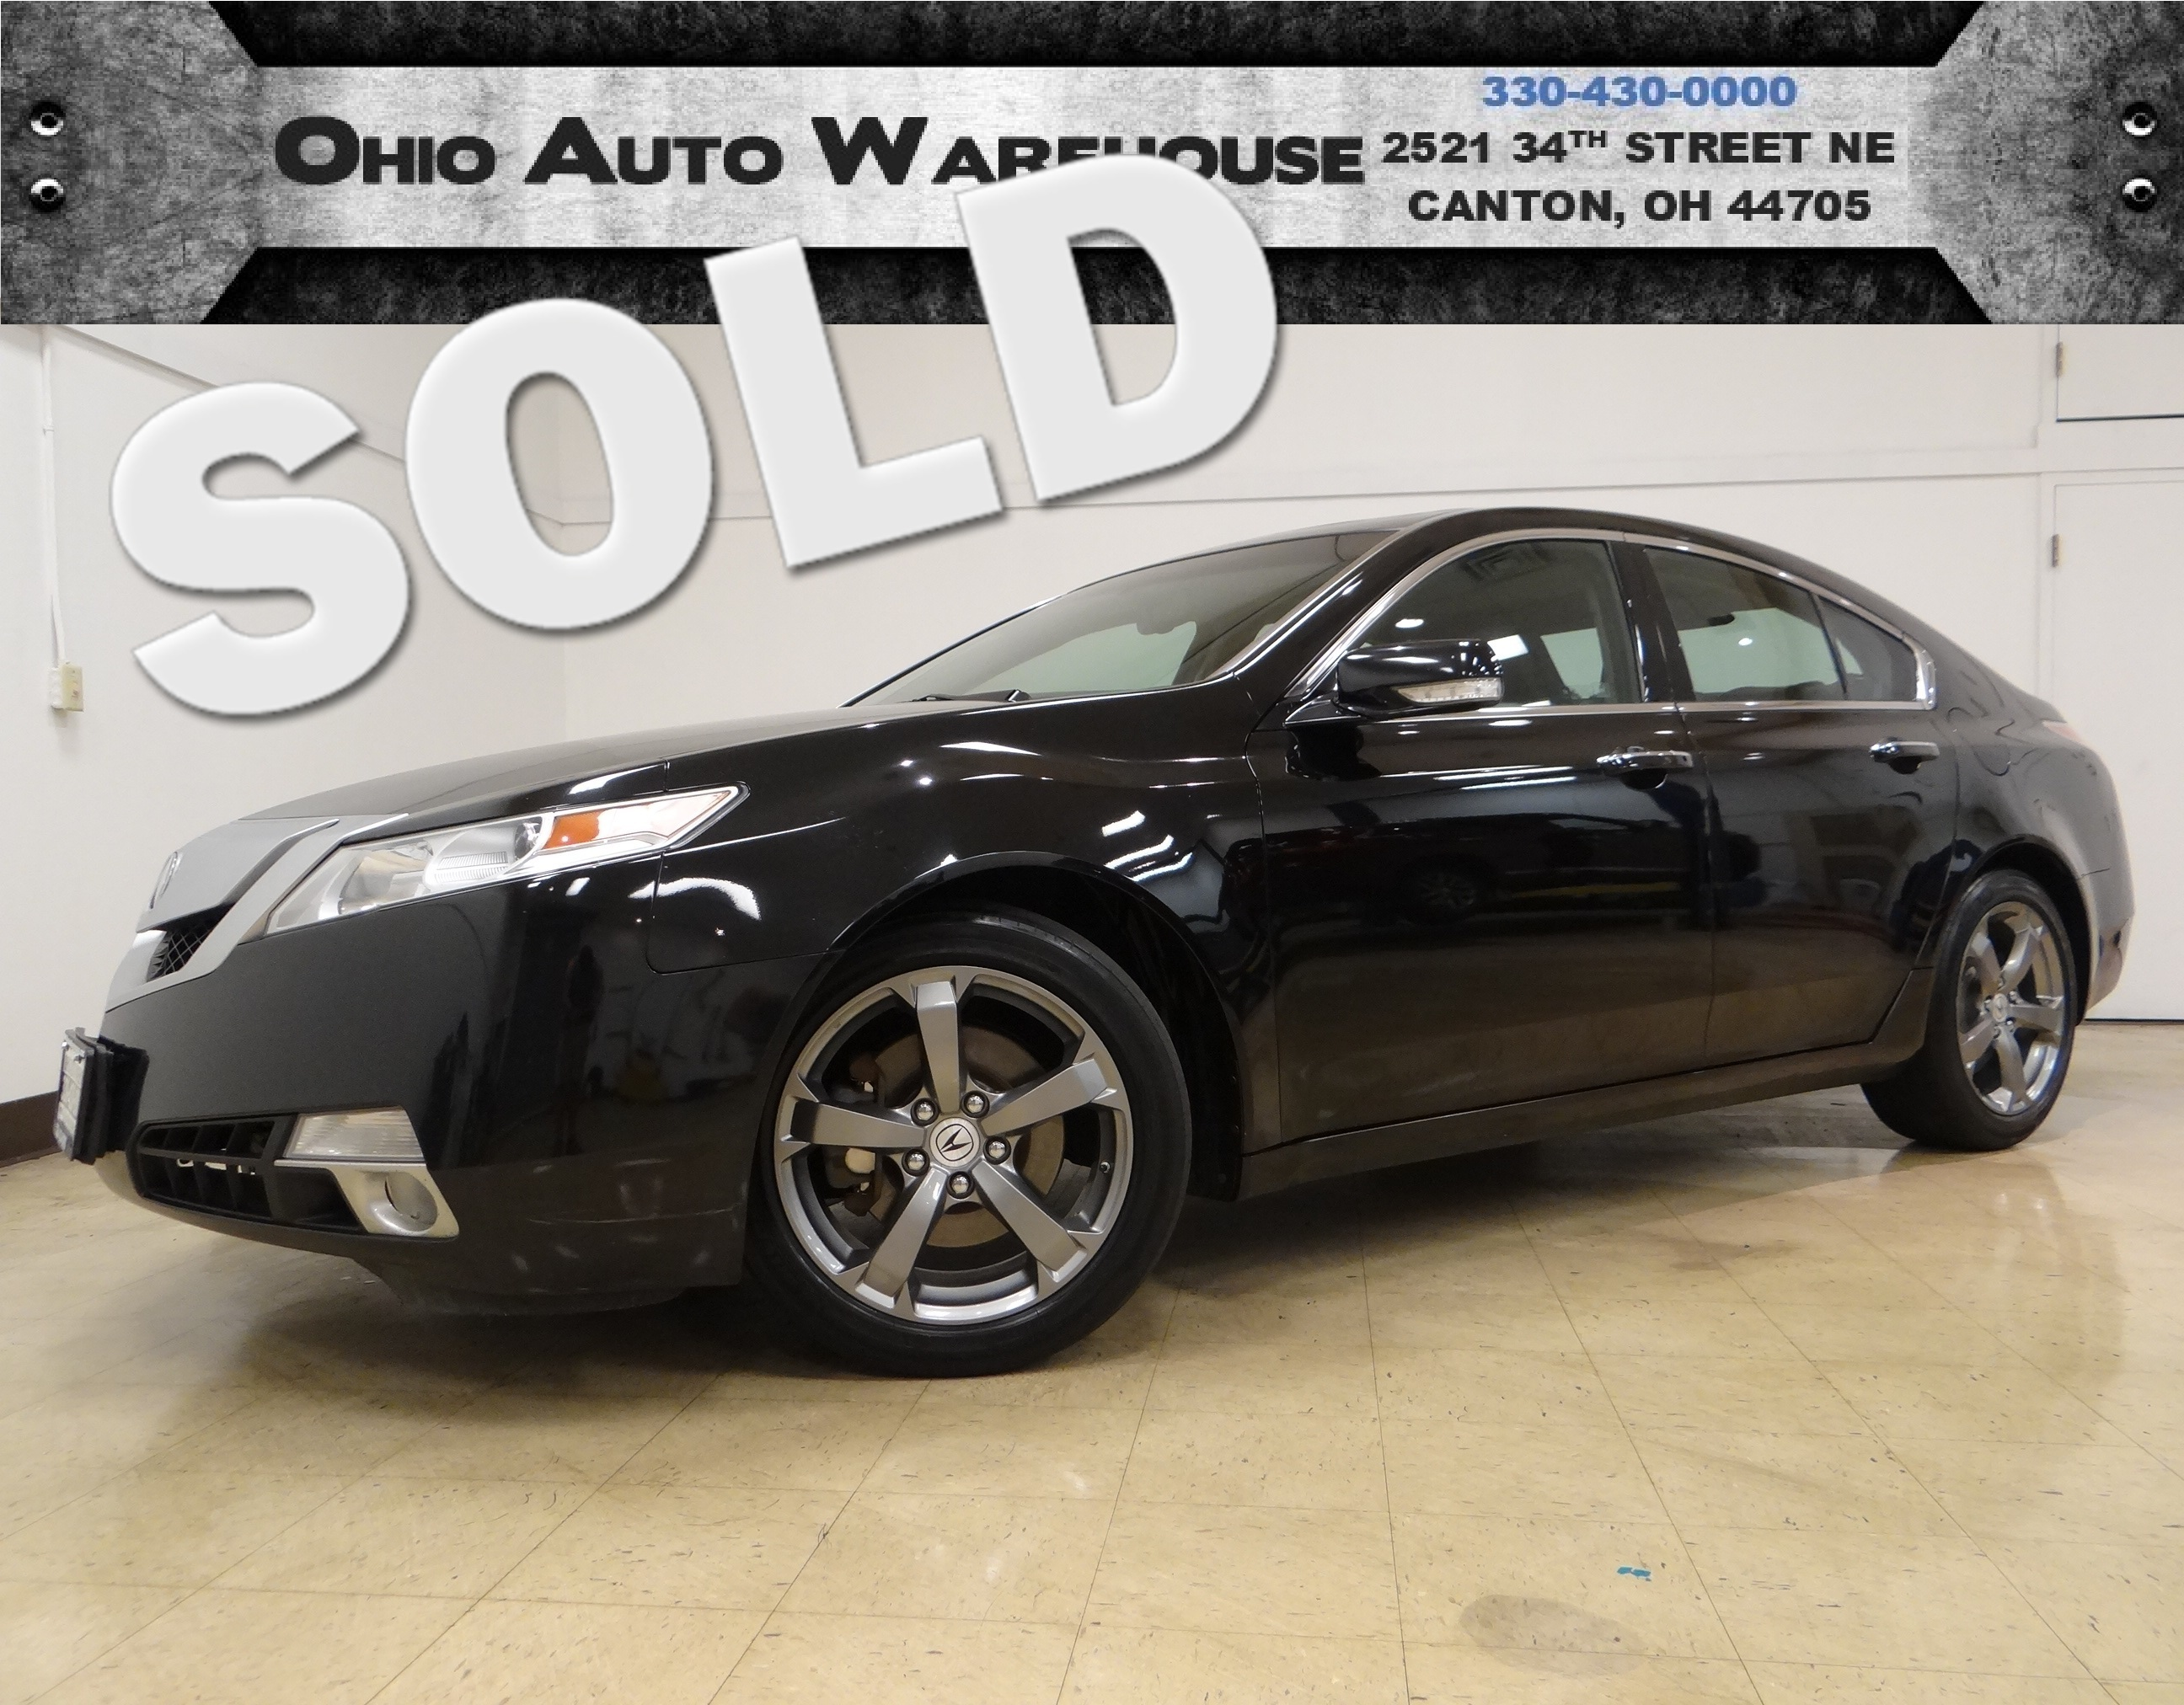 2011 Acura TL AWD Navi Sunroof Clean Carfax We Finance in Canton Ohio